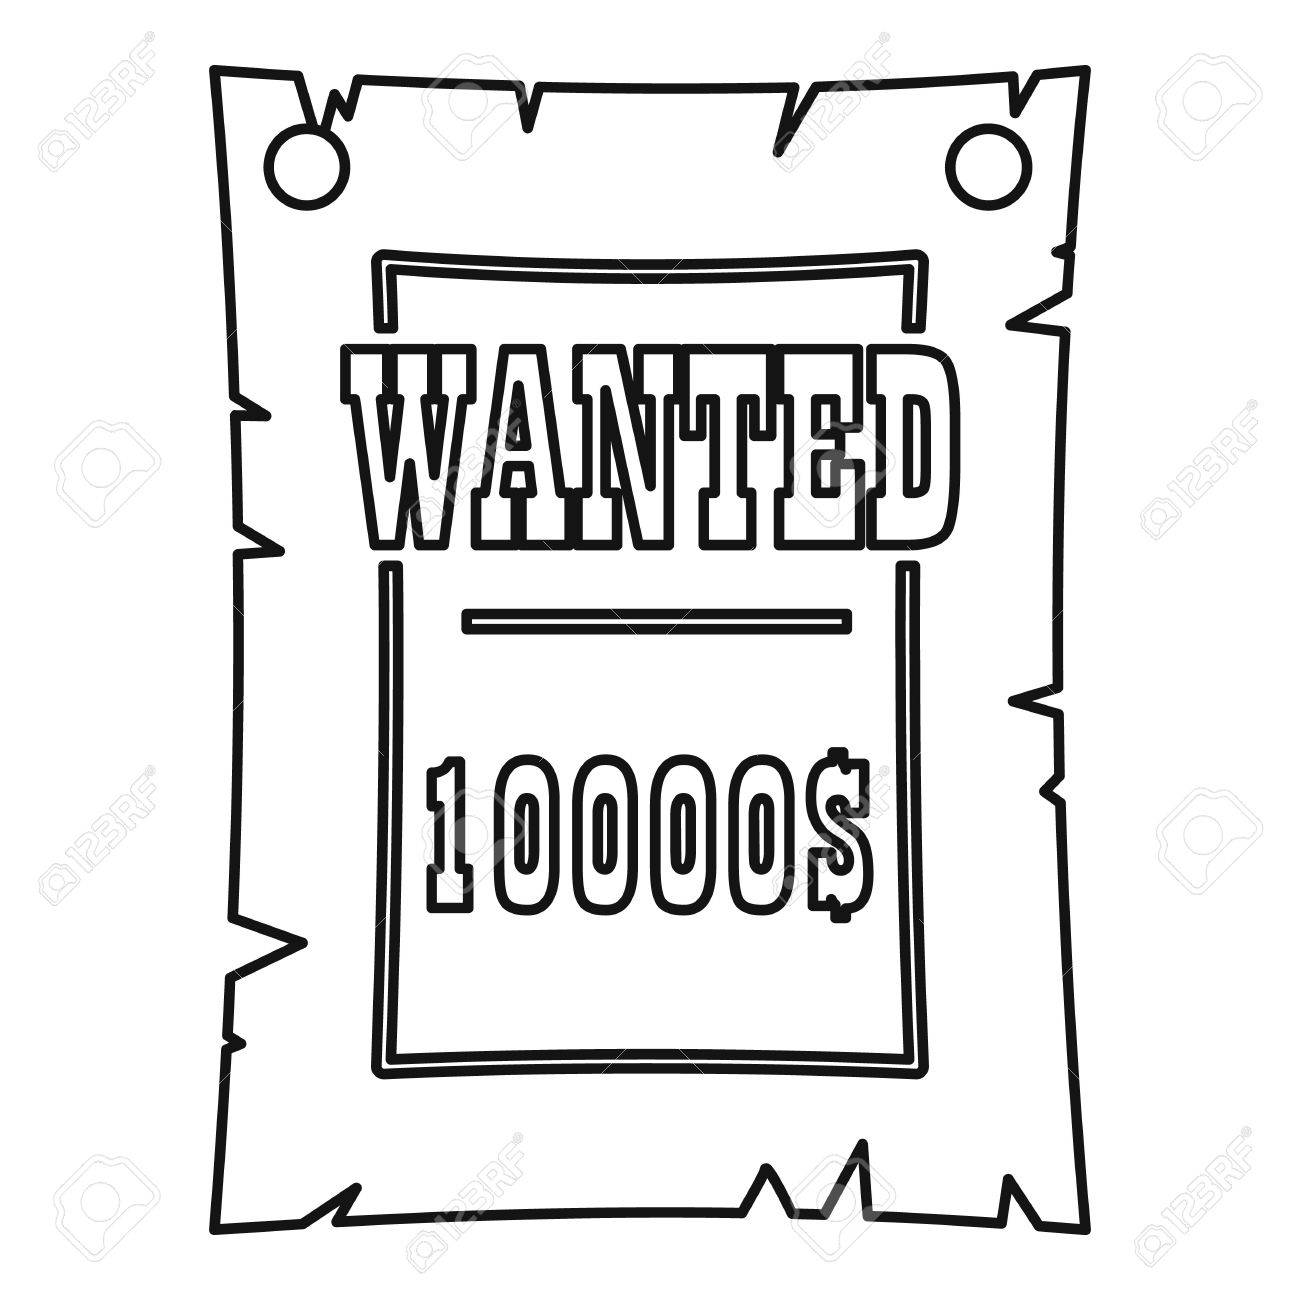 Vintage Wanted Poster Icon, Outline Style Royalty Free Cliparts ...